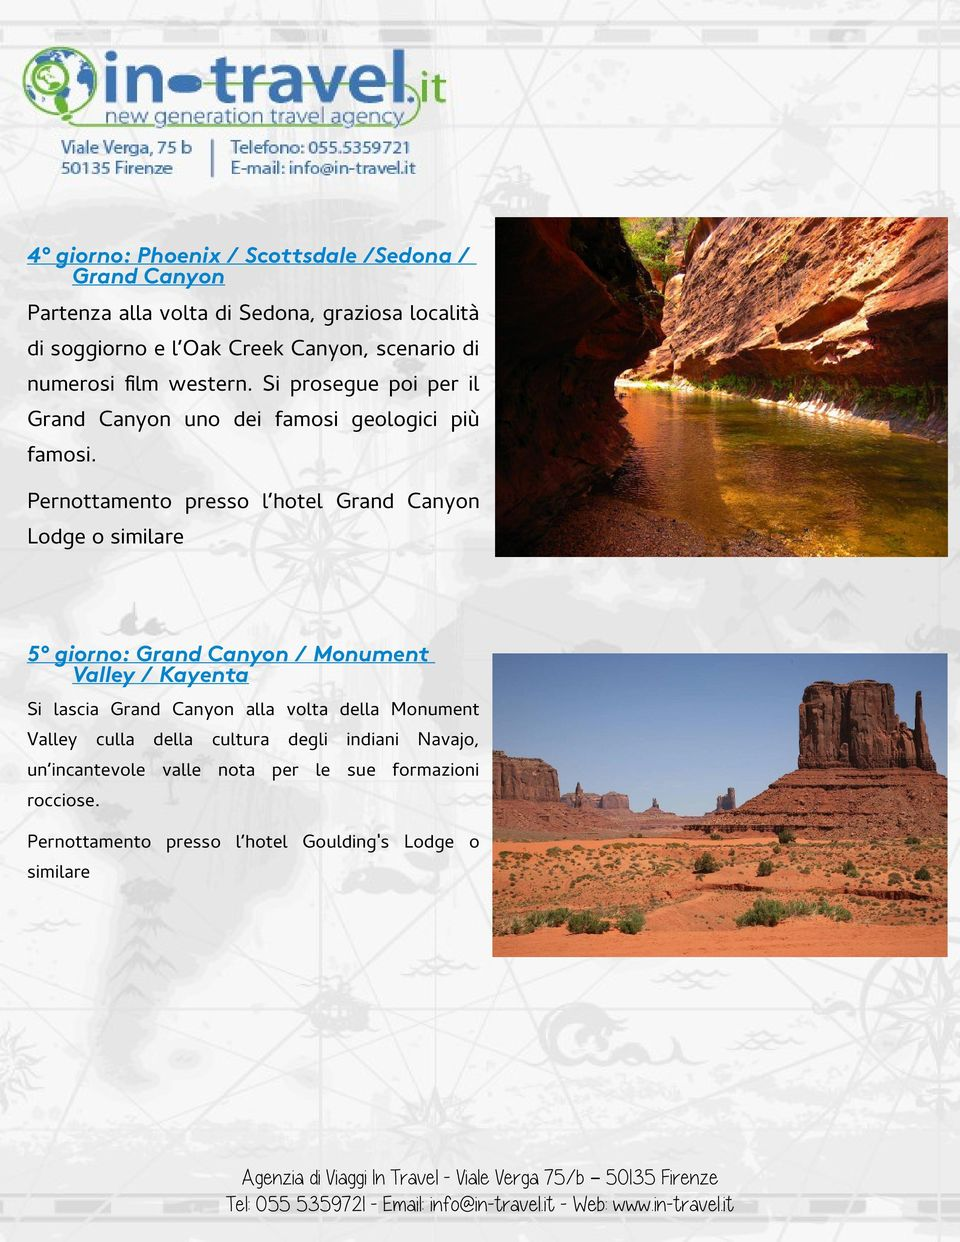 Pernottamento presso l hotel Grand Canyon Lodge o similare 5 giorno: Grand Canyon / Monument Valley / Kayenta Si lascia Grand Canyon alla